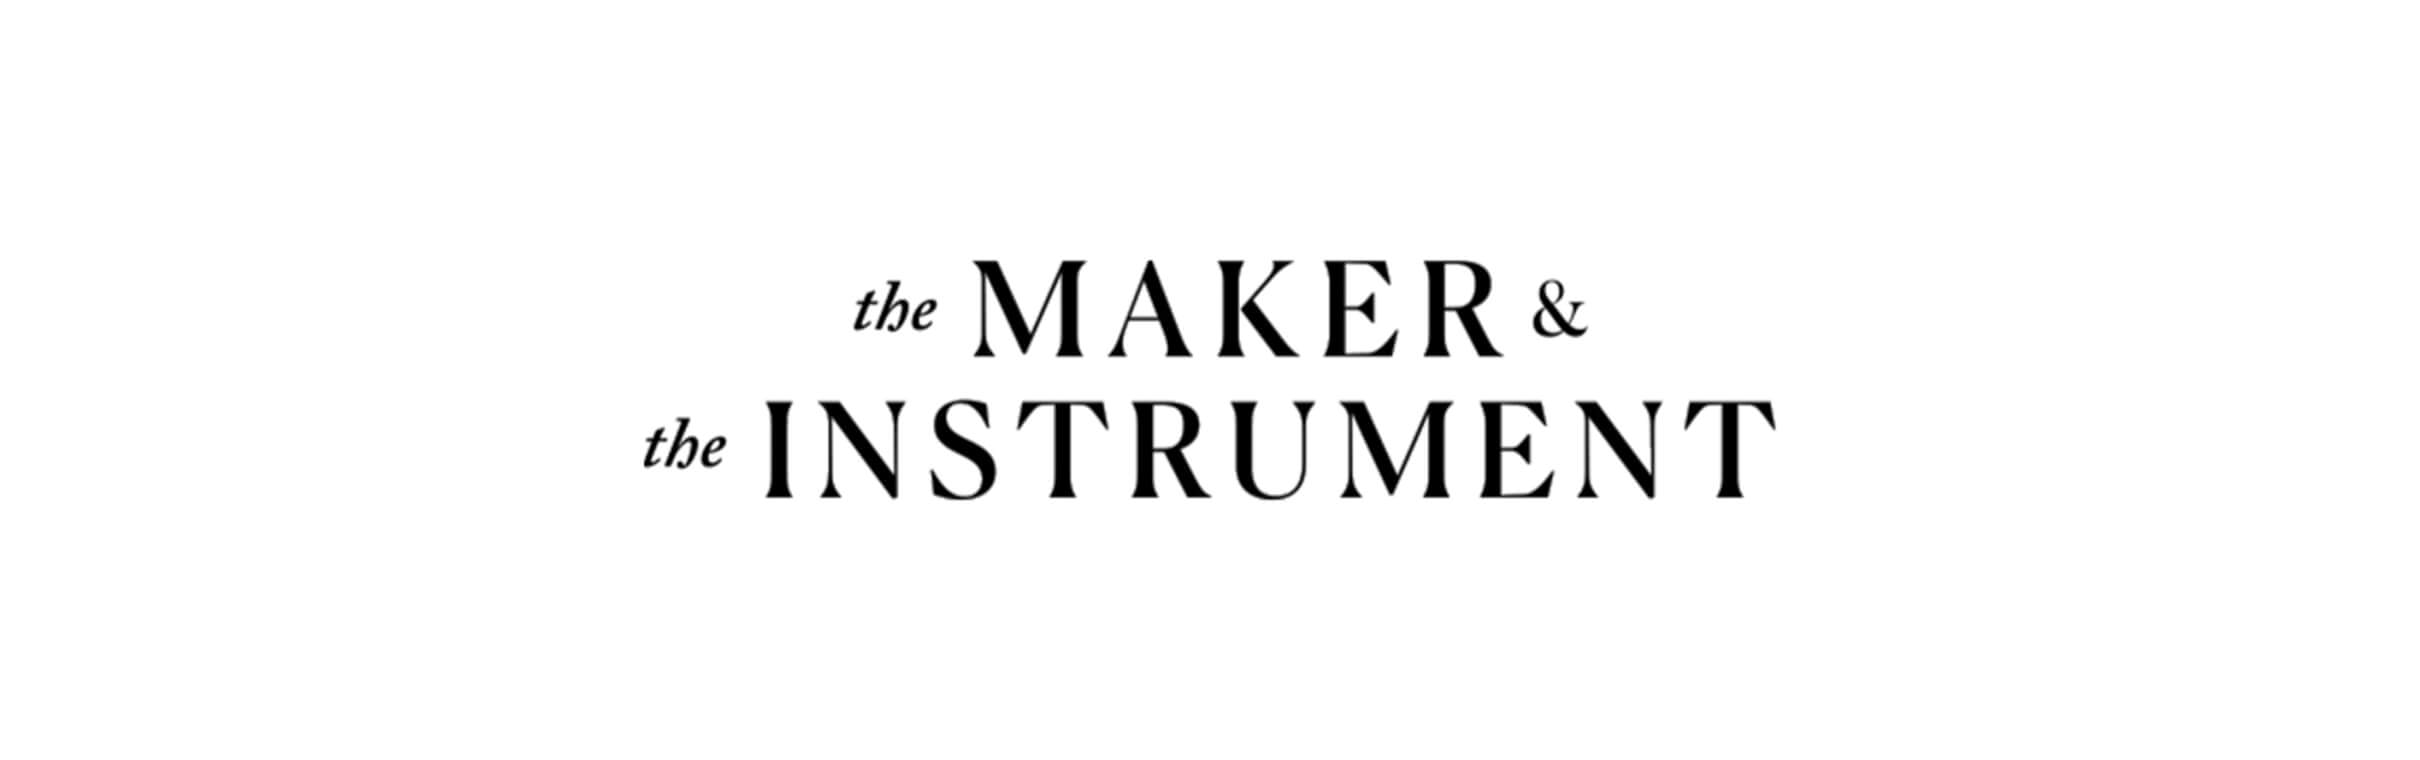 The Maker & The Instrument